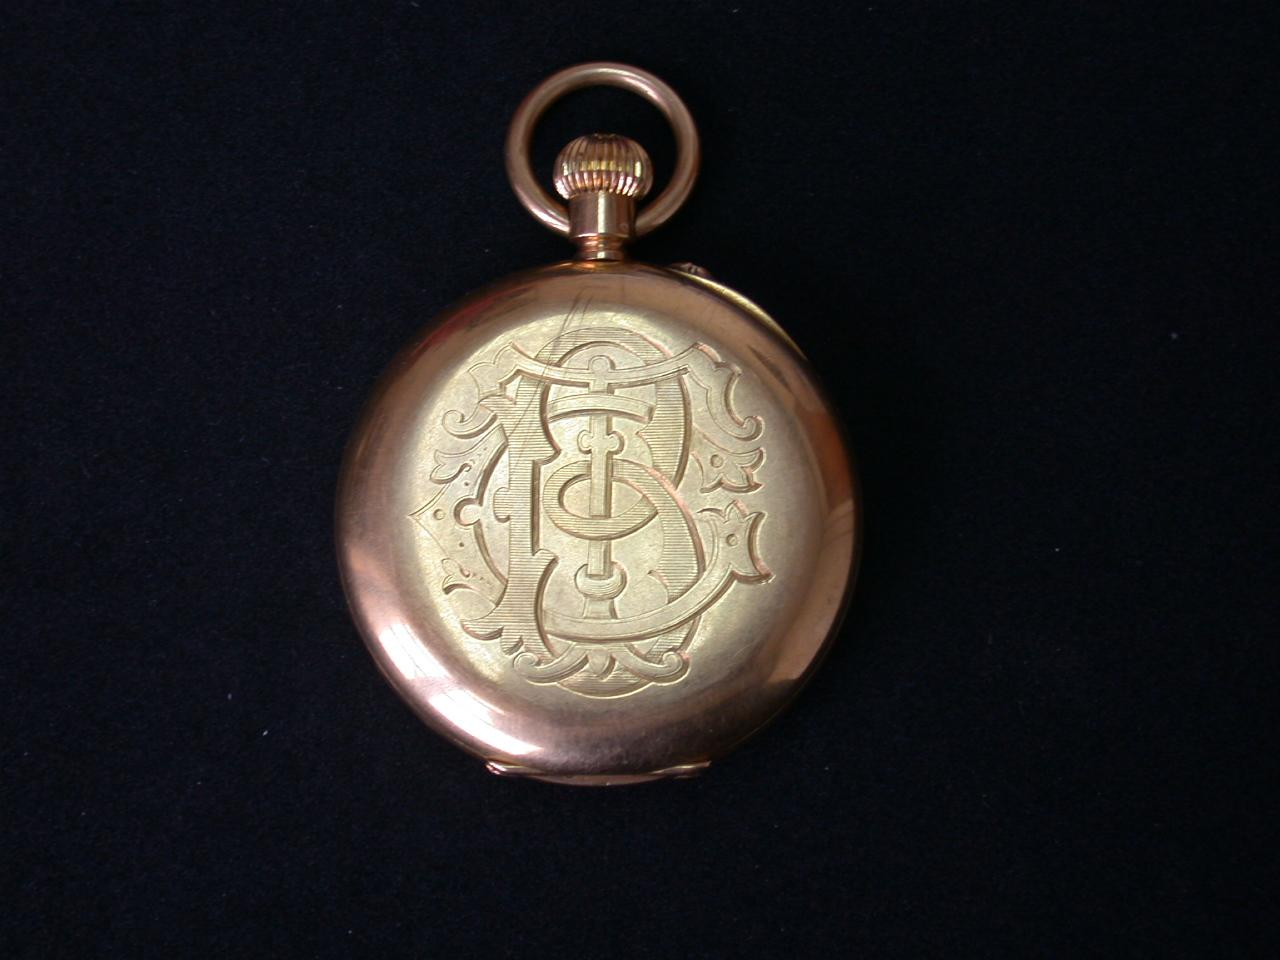 George Trotter Brockett's watch and initials